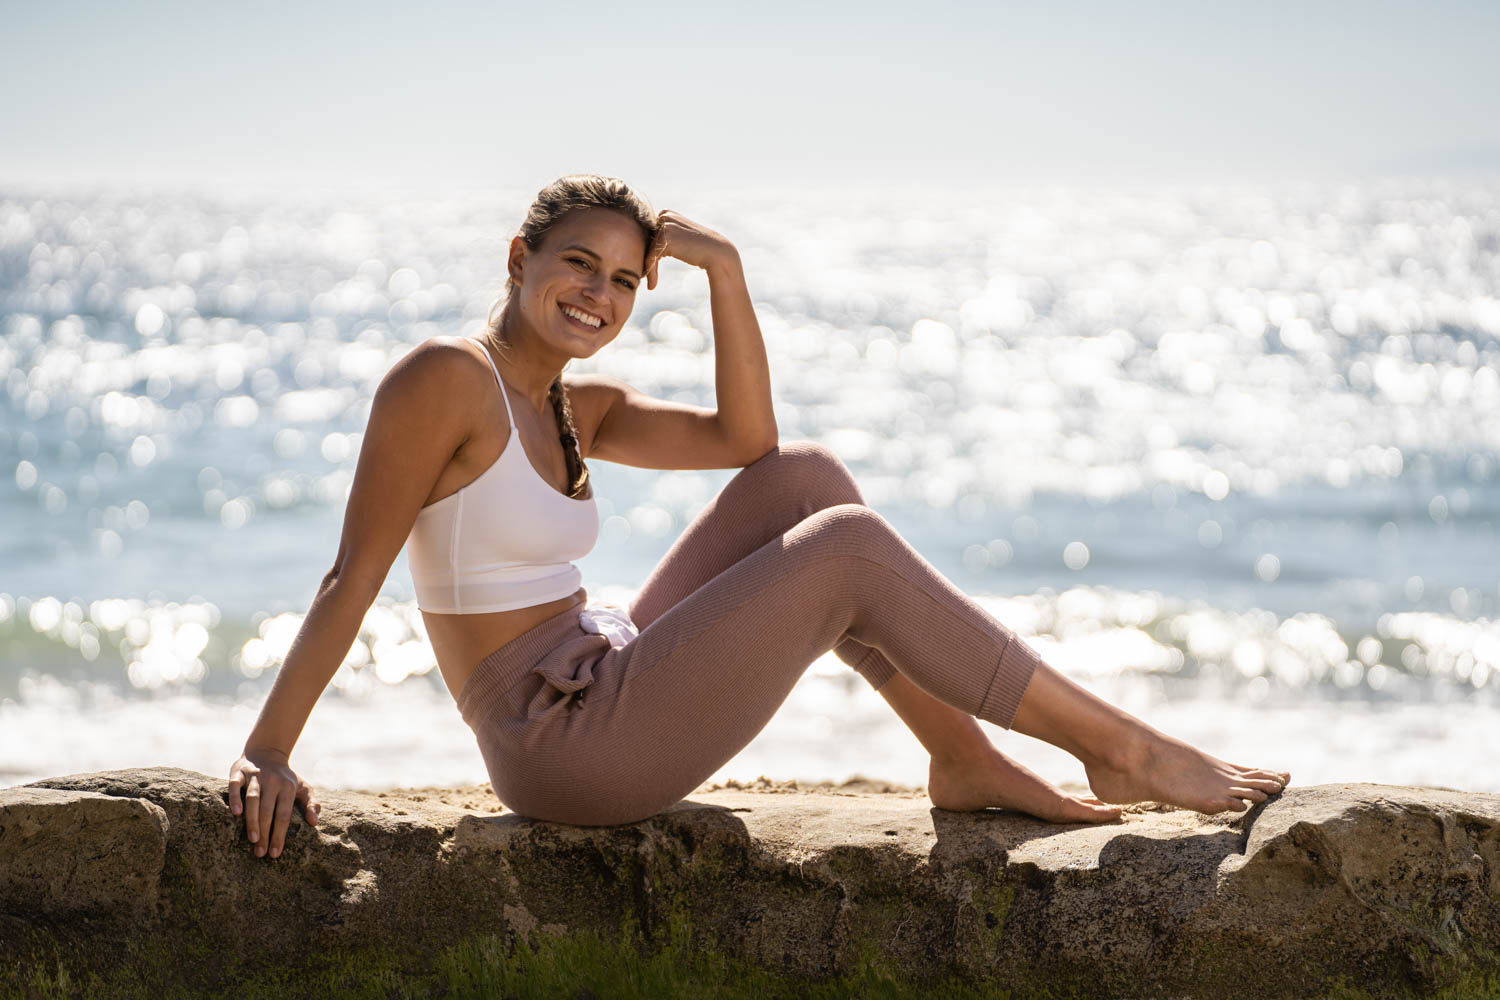 Lifestyle-Photography-Outdoor-Model-Los-Angeles